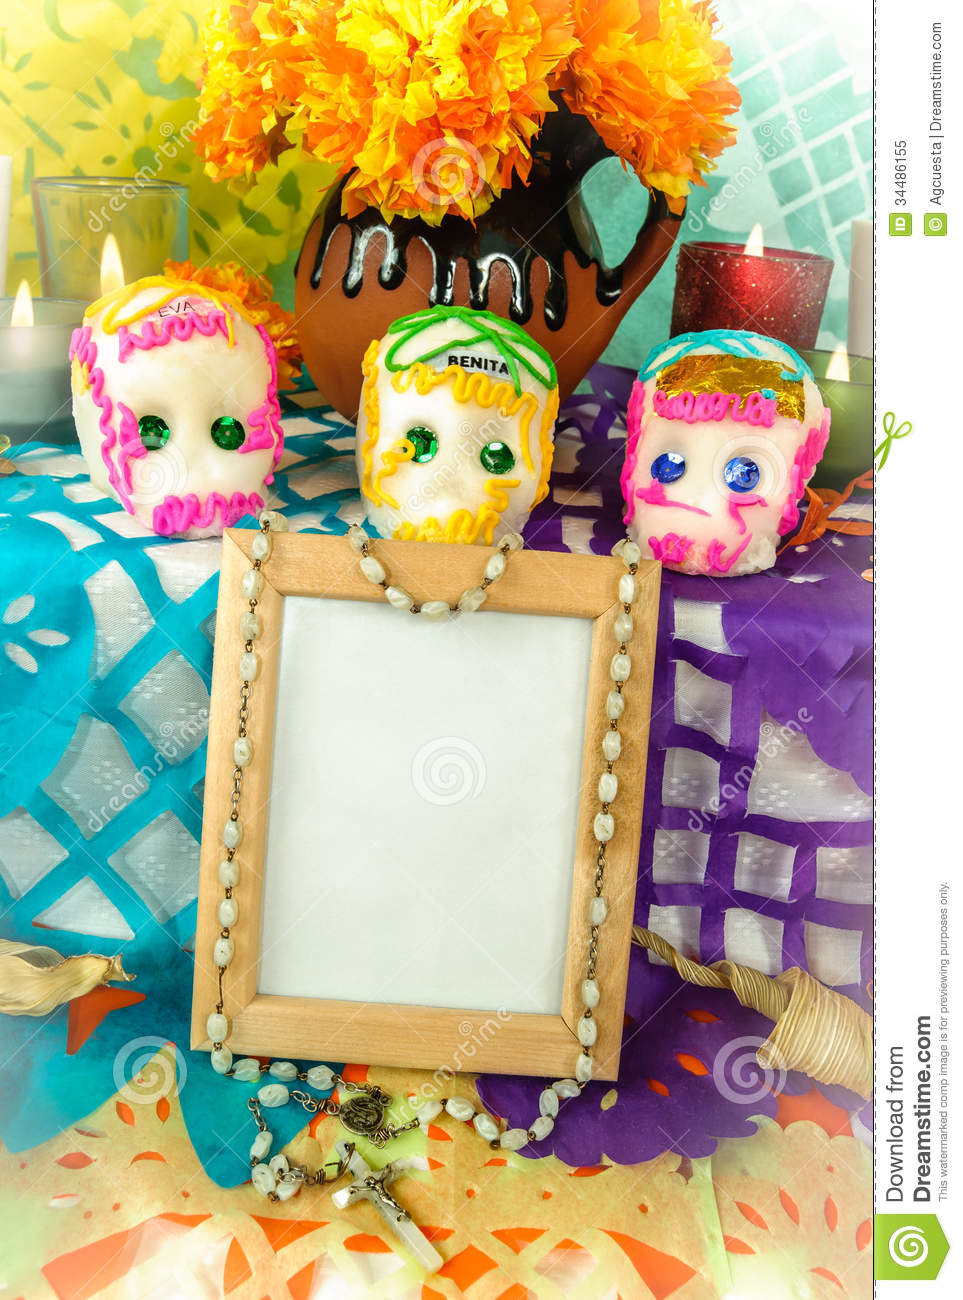 Blank Photo Frame On A Day Of The Dead Altar Dia De Muertos Stock